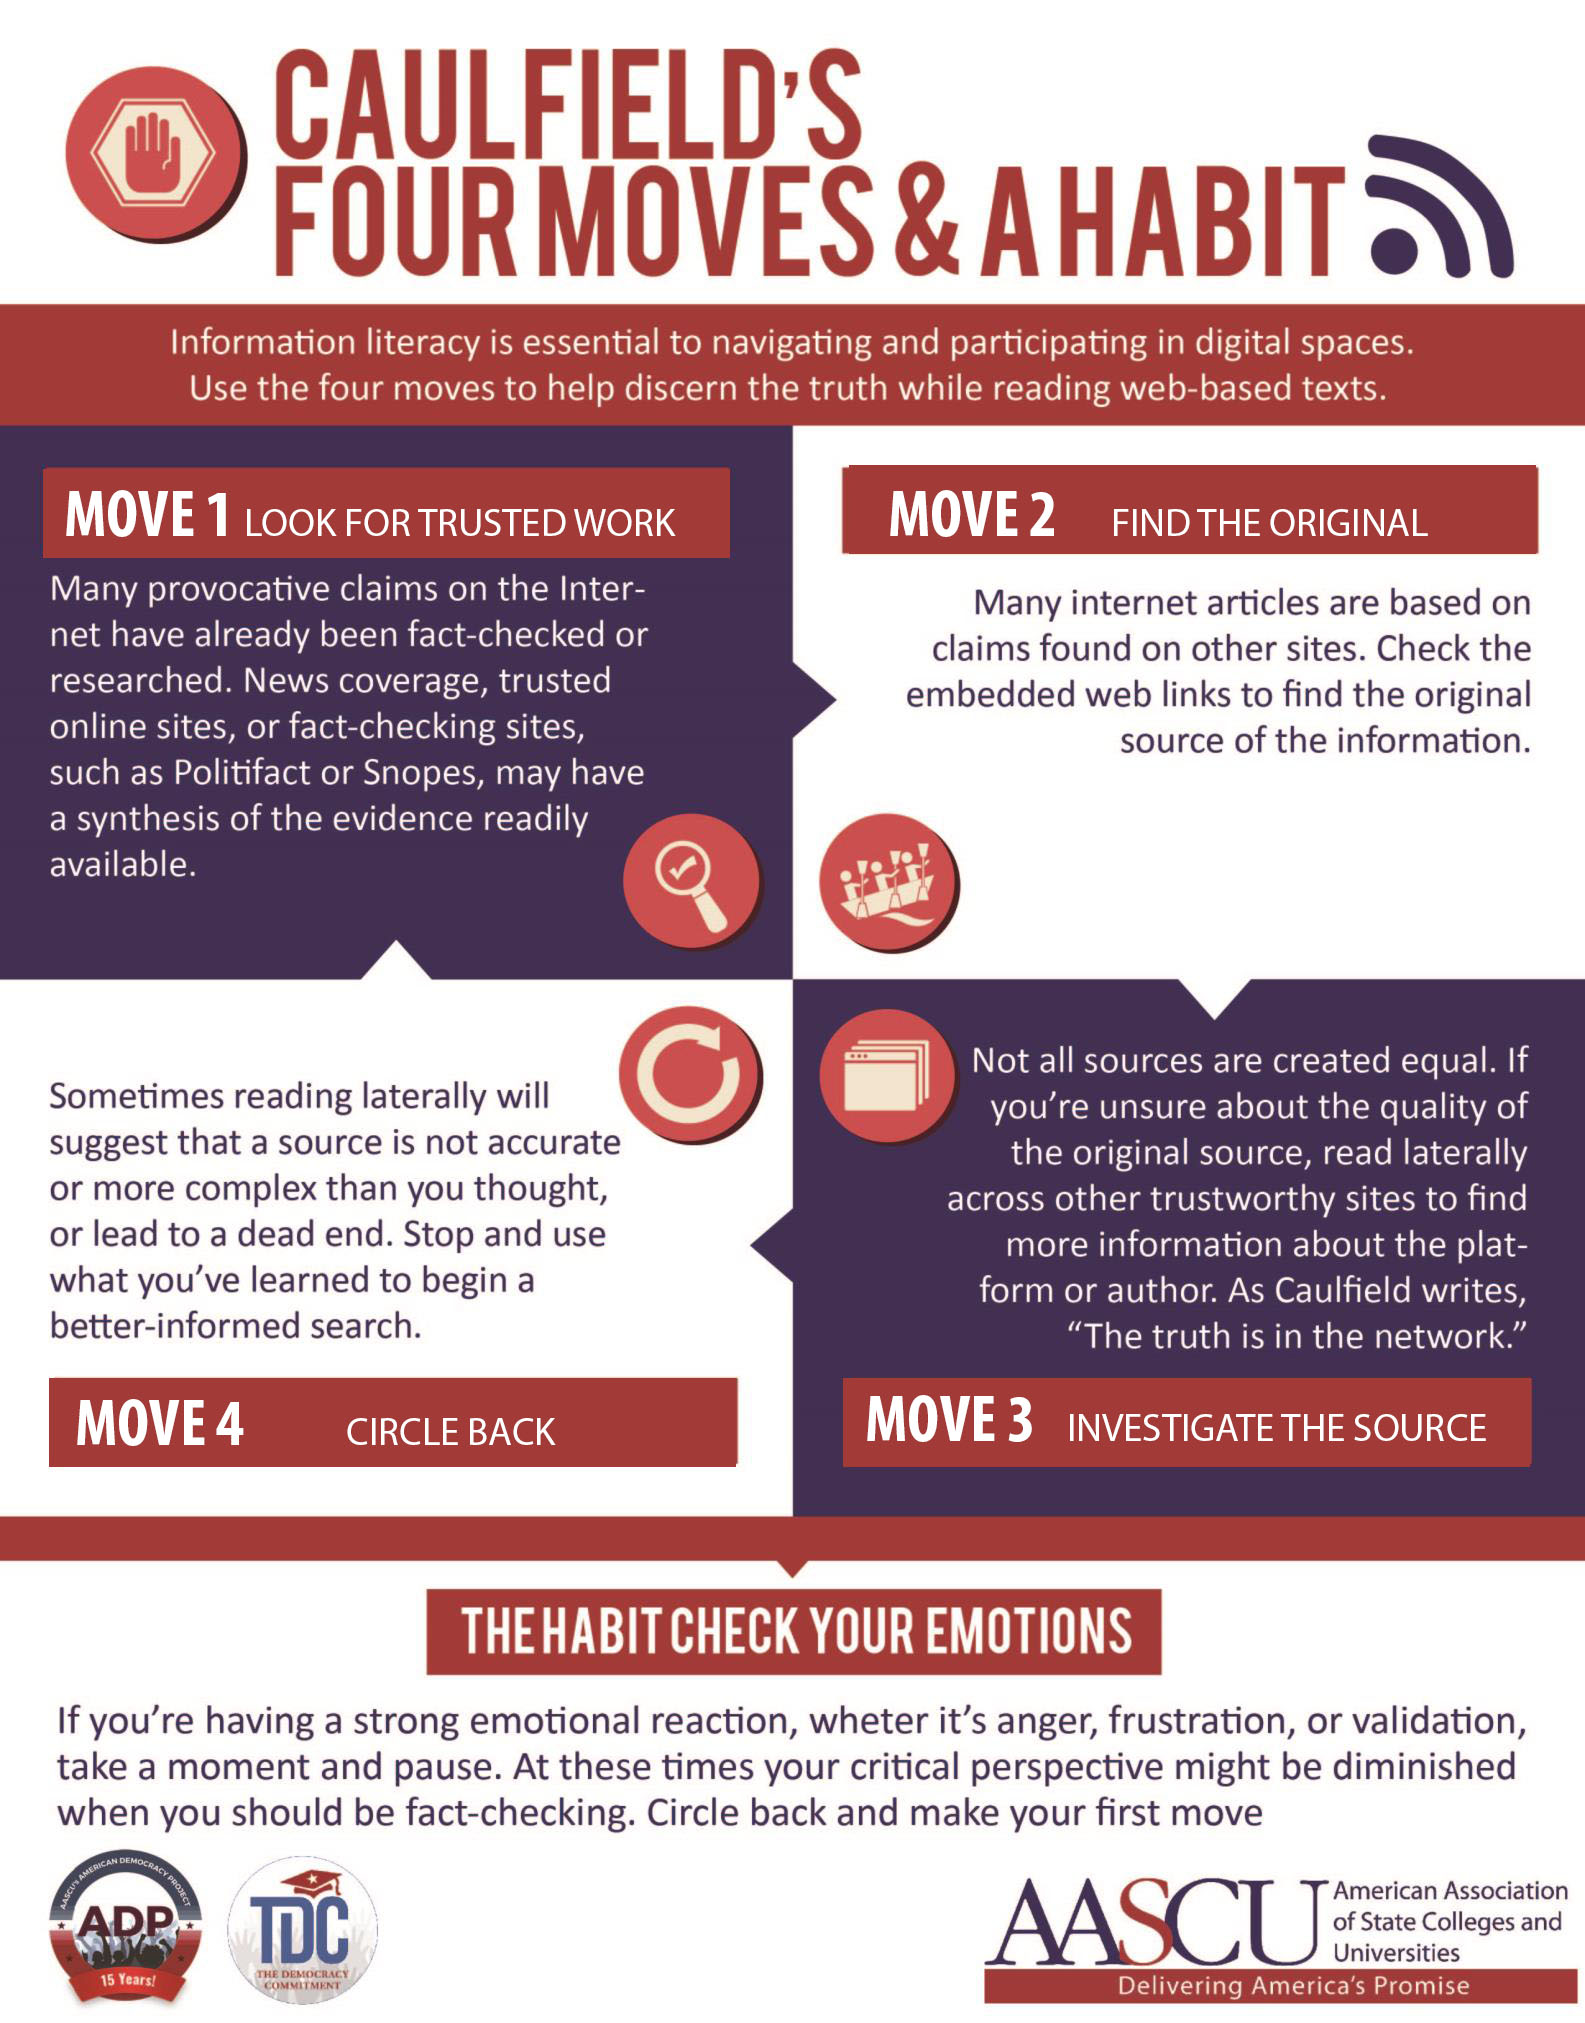 Infographic of Four Moves and a Habit